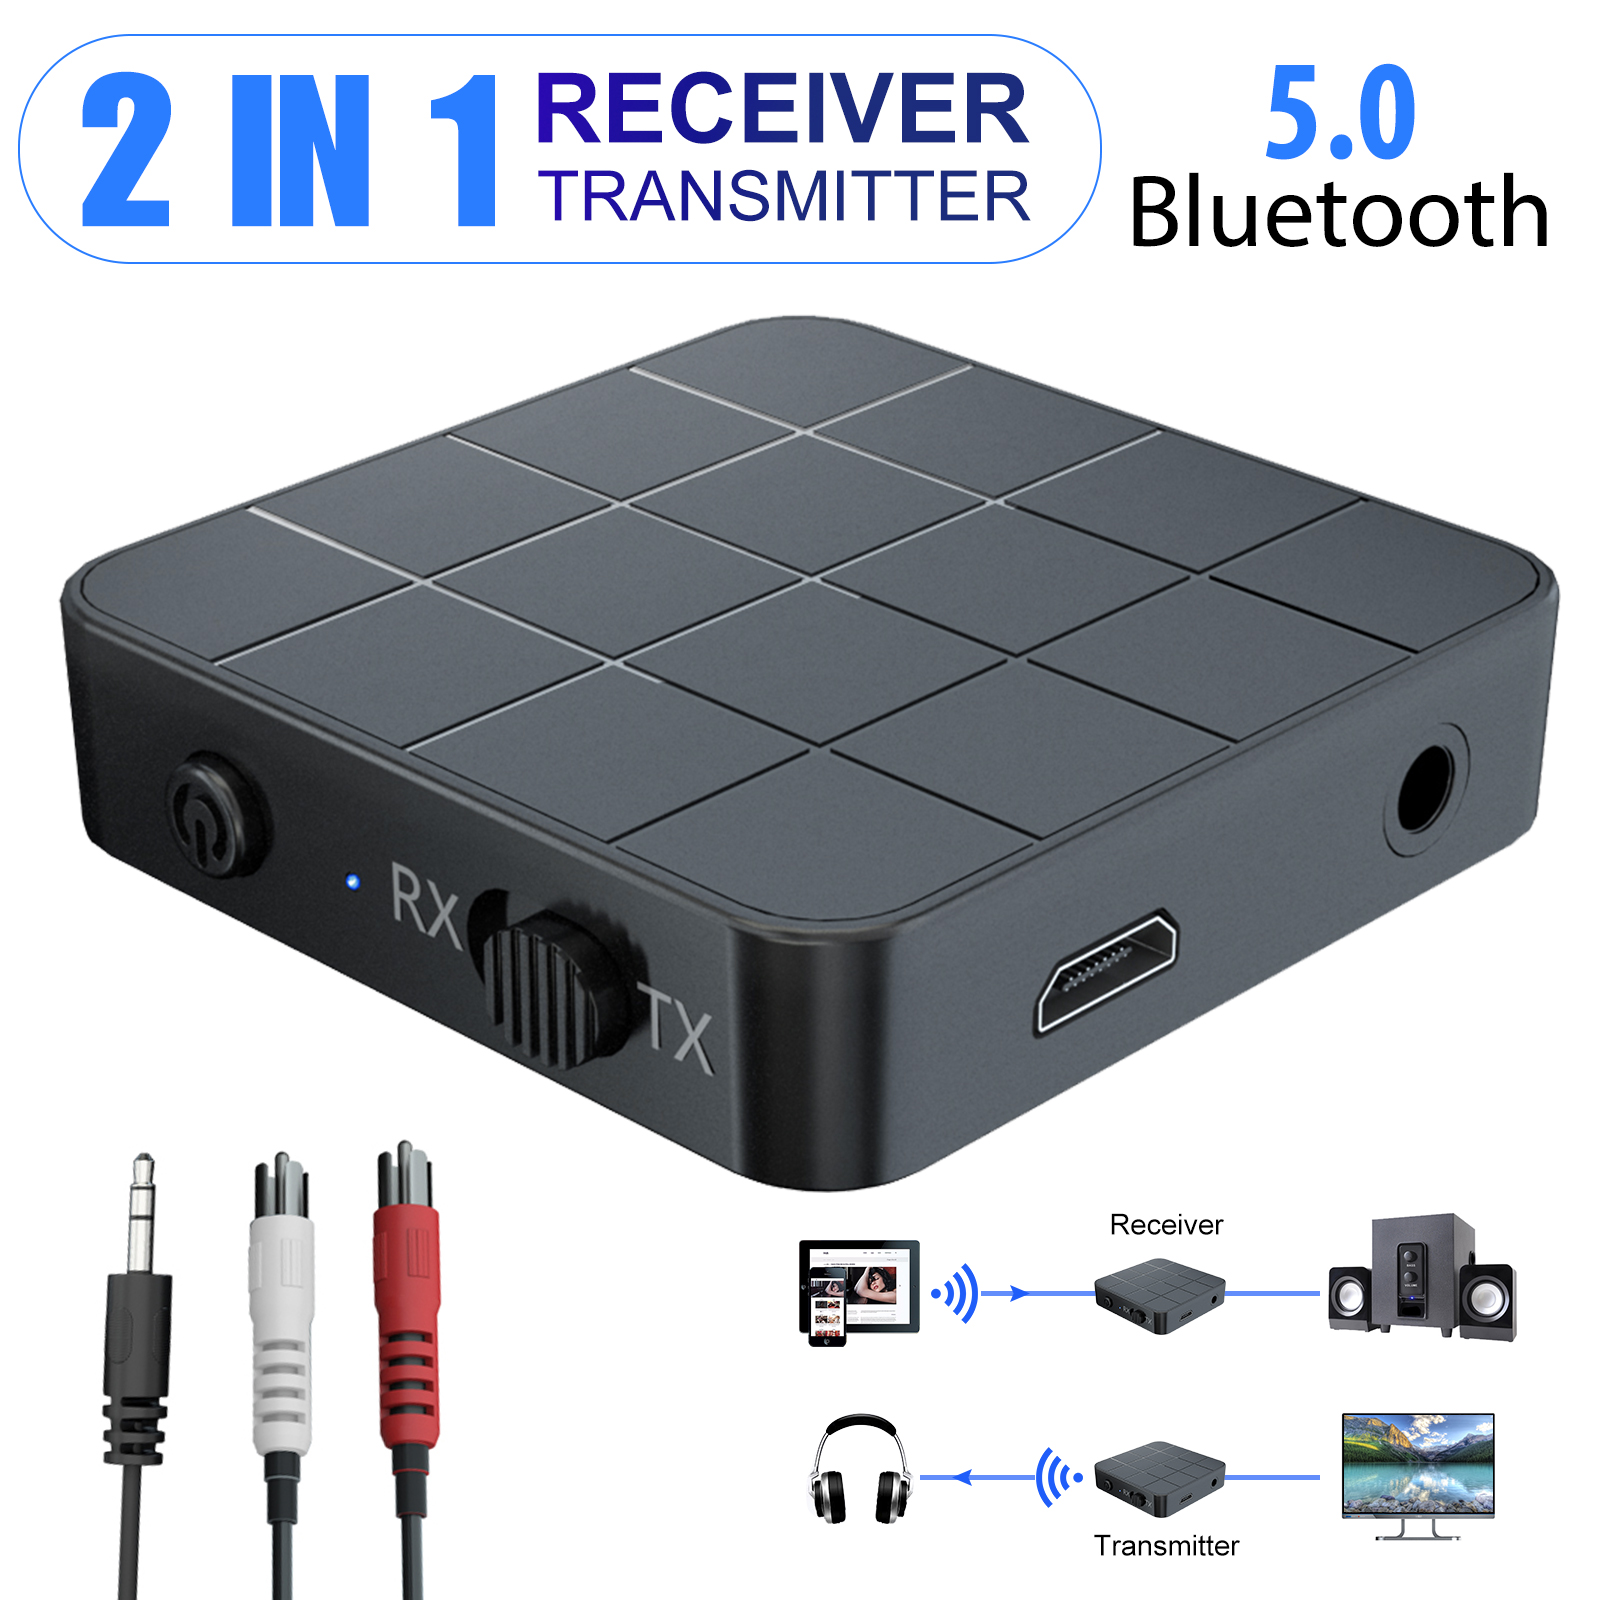 Bluetooth 5 0 Transmitter Receiver For Car Eeekit Low Latency Rechargeable Wireless 3 5mm Audio Adapter Bluetooth Range Extender Repeater For Tv Pc Car Home Stereo Walmart Com Walmart Com